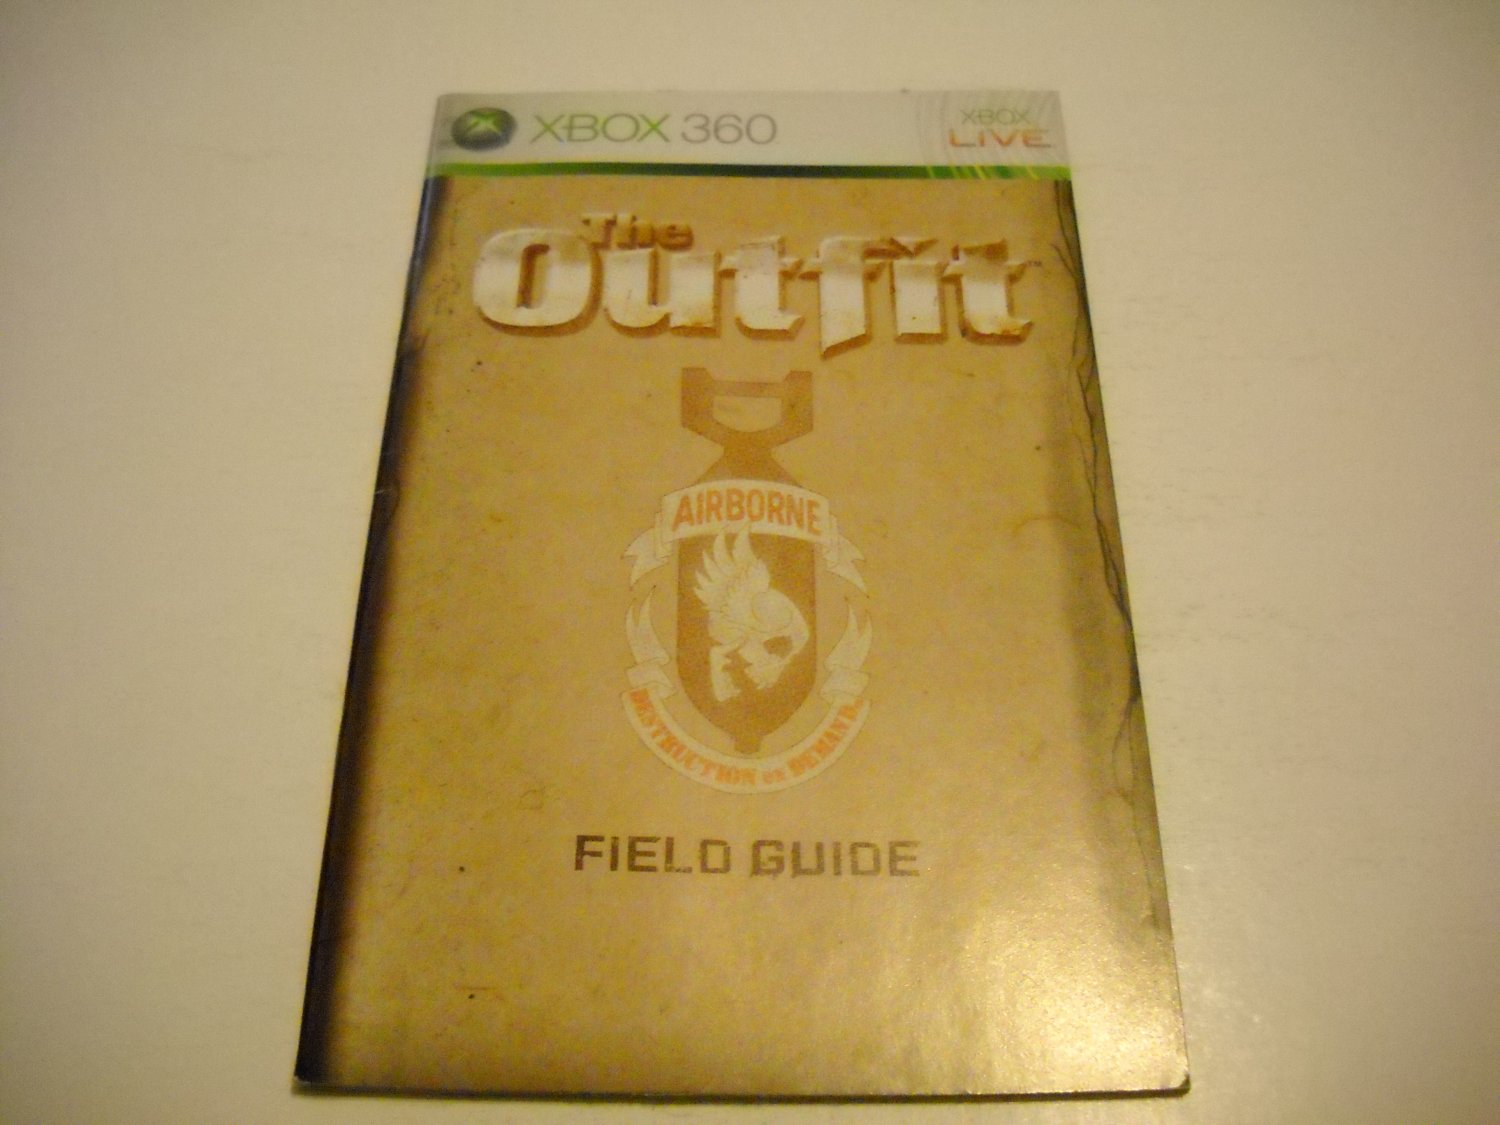 Manual ONLY ~  for The Outfit   - Xbox 360 Instruction Booklet